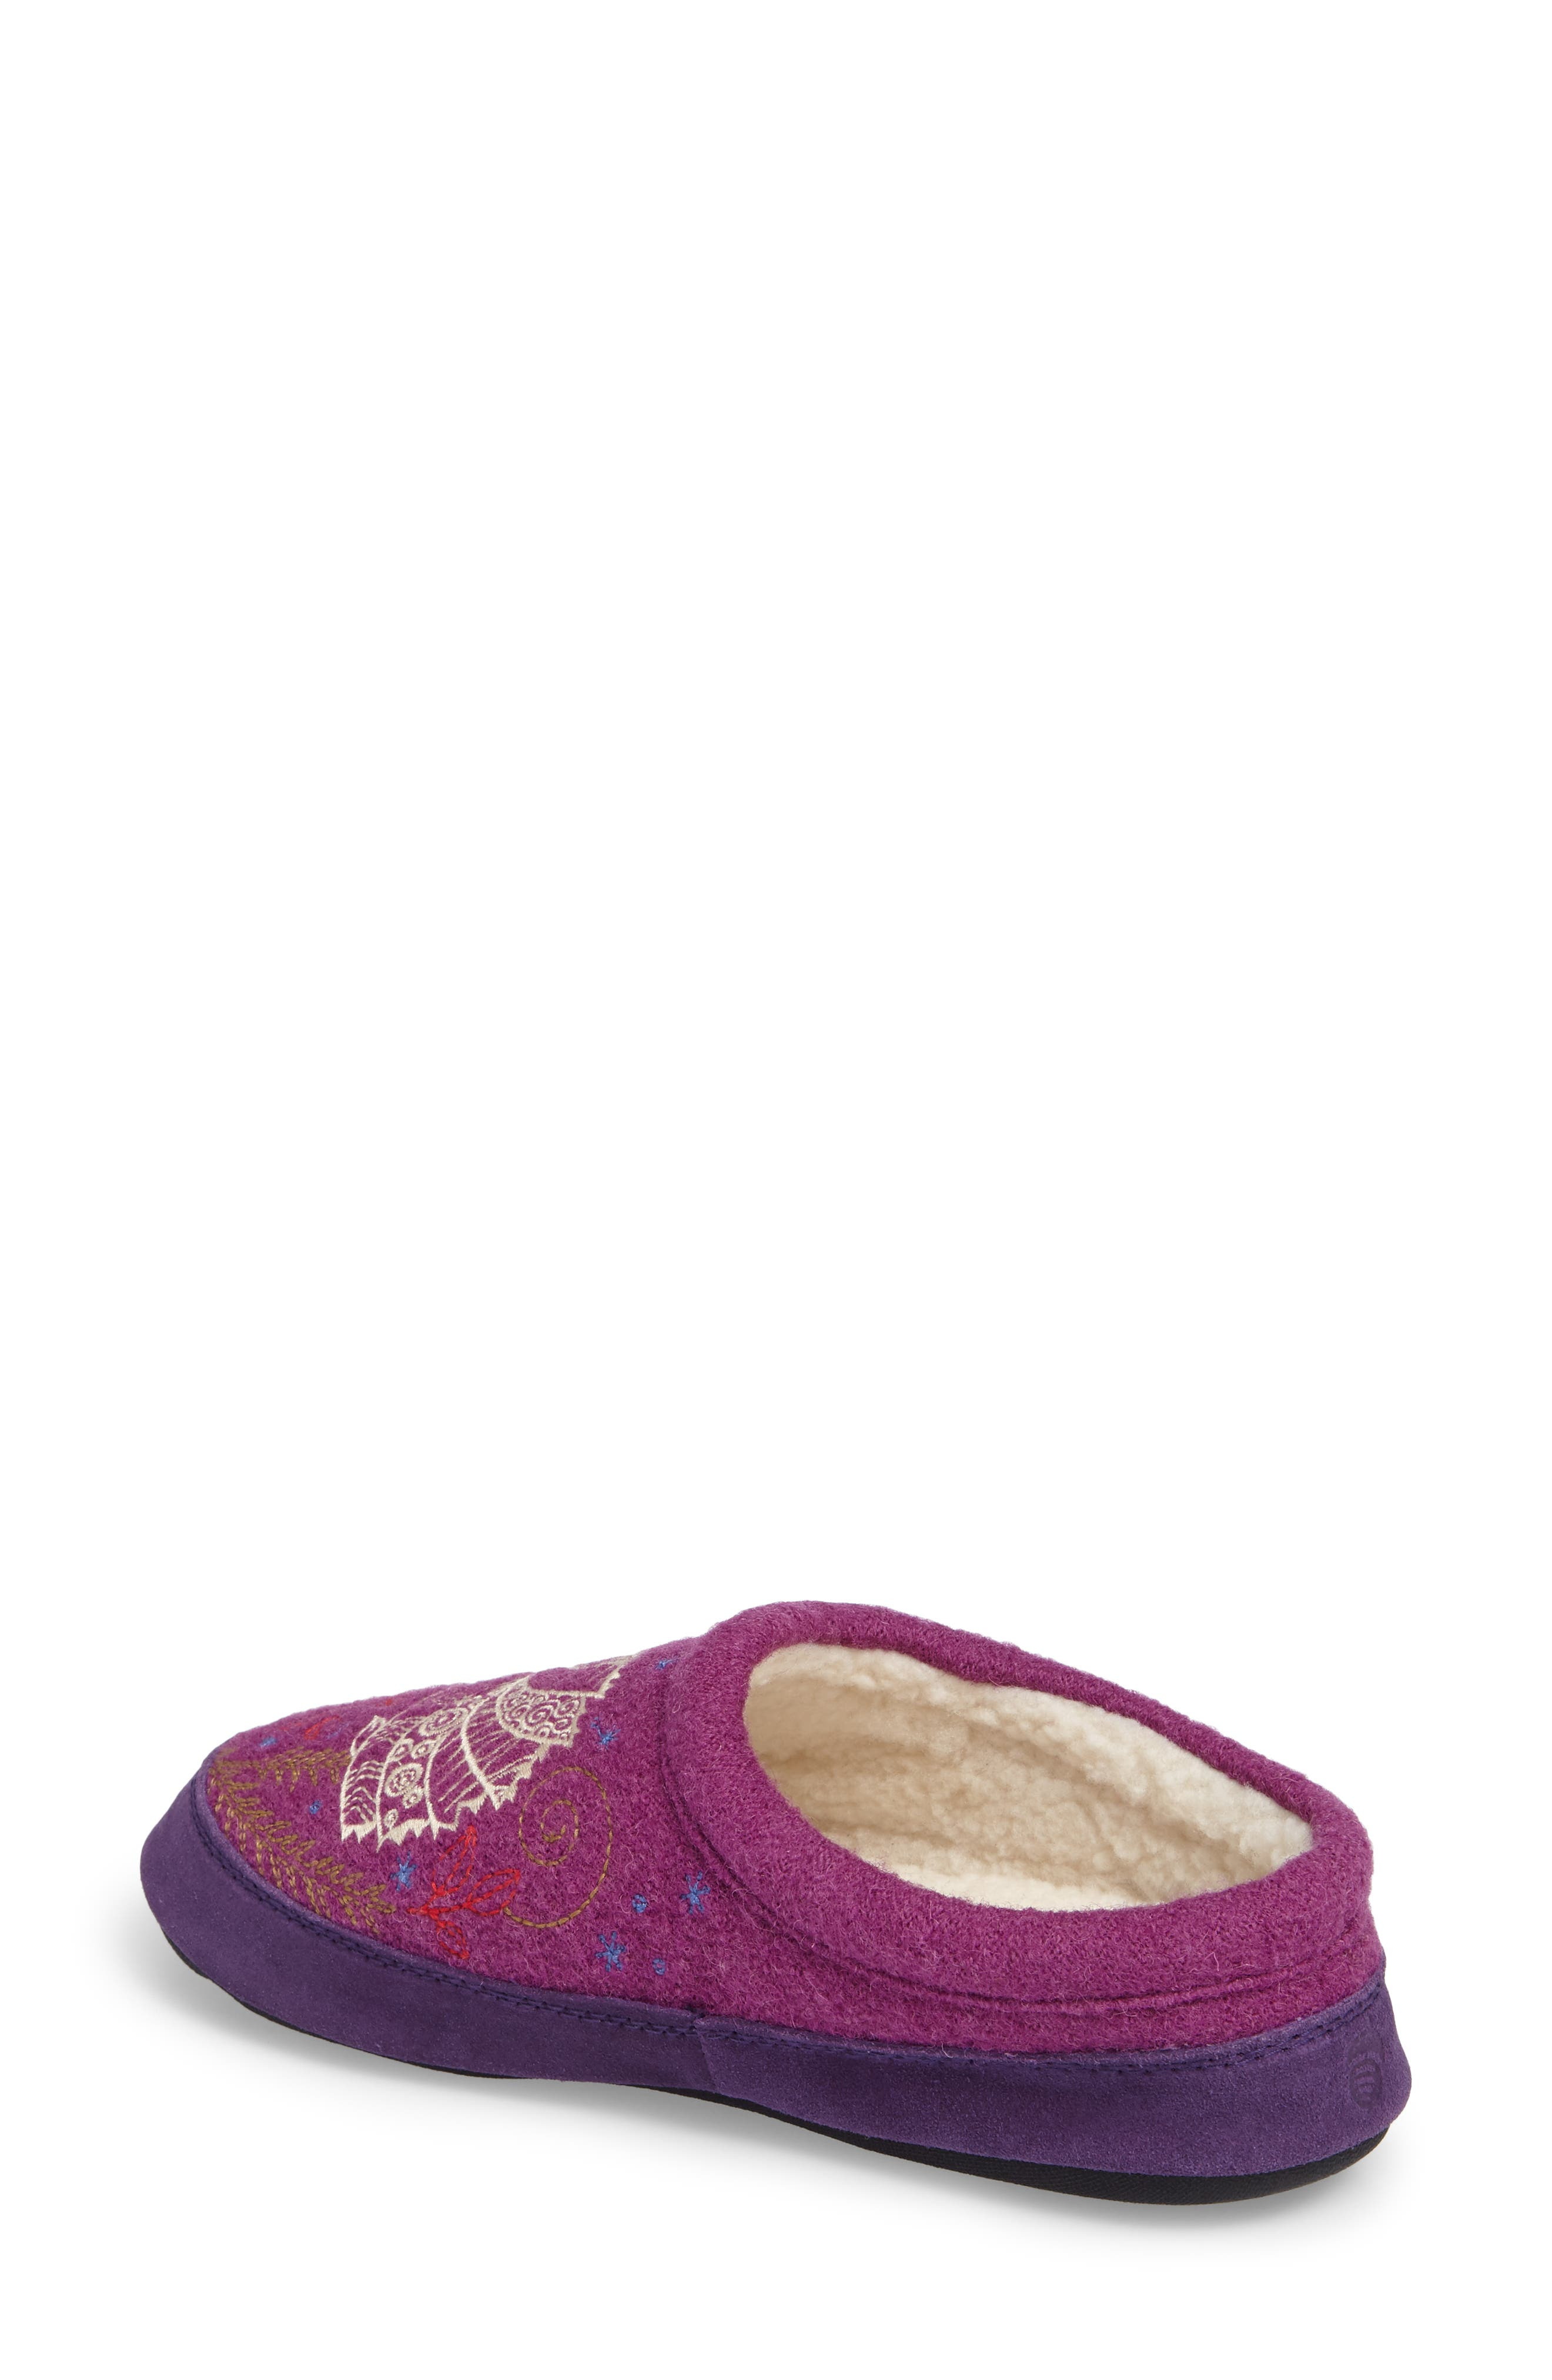 'Forest' Wool Mule Slipper,                             Alternate thumbnail 2, color,                             500